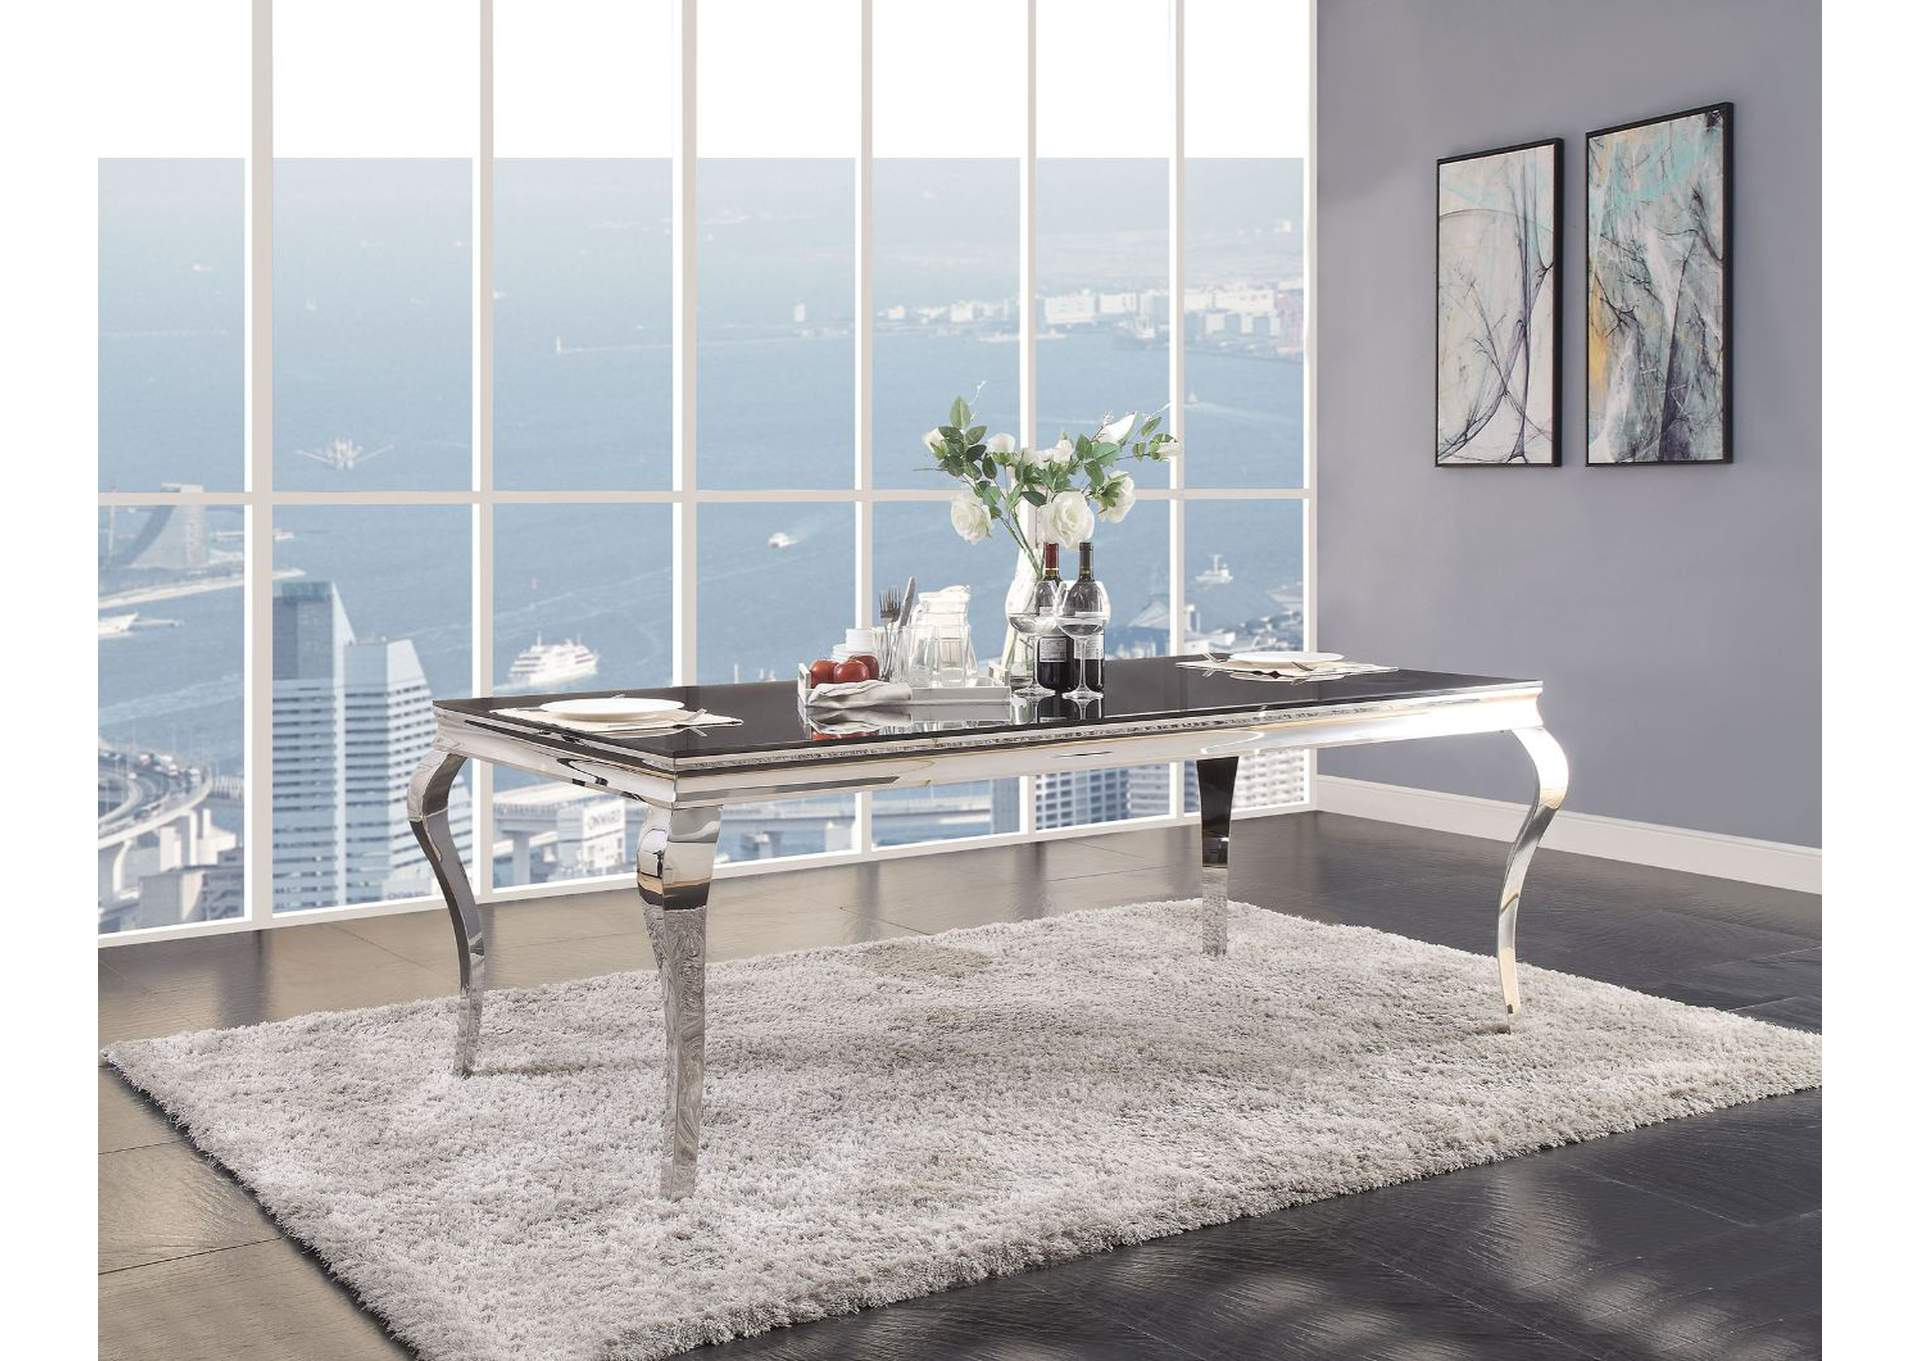 Fabiola Black Dining Table,Acme